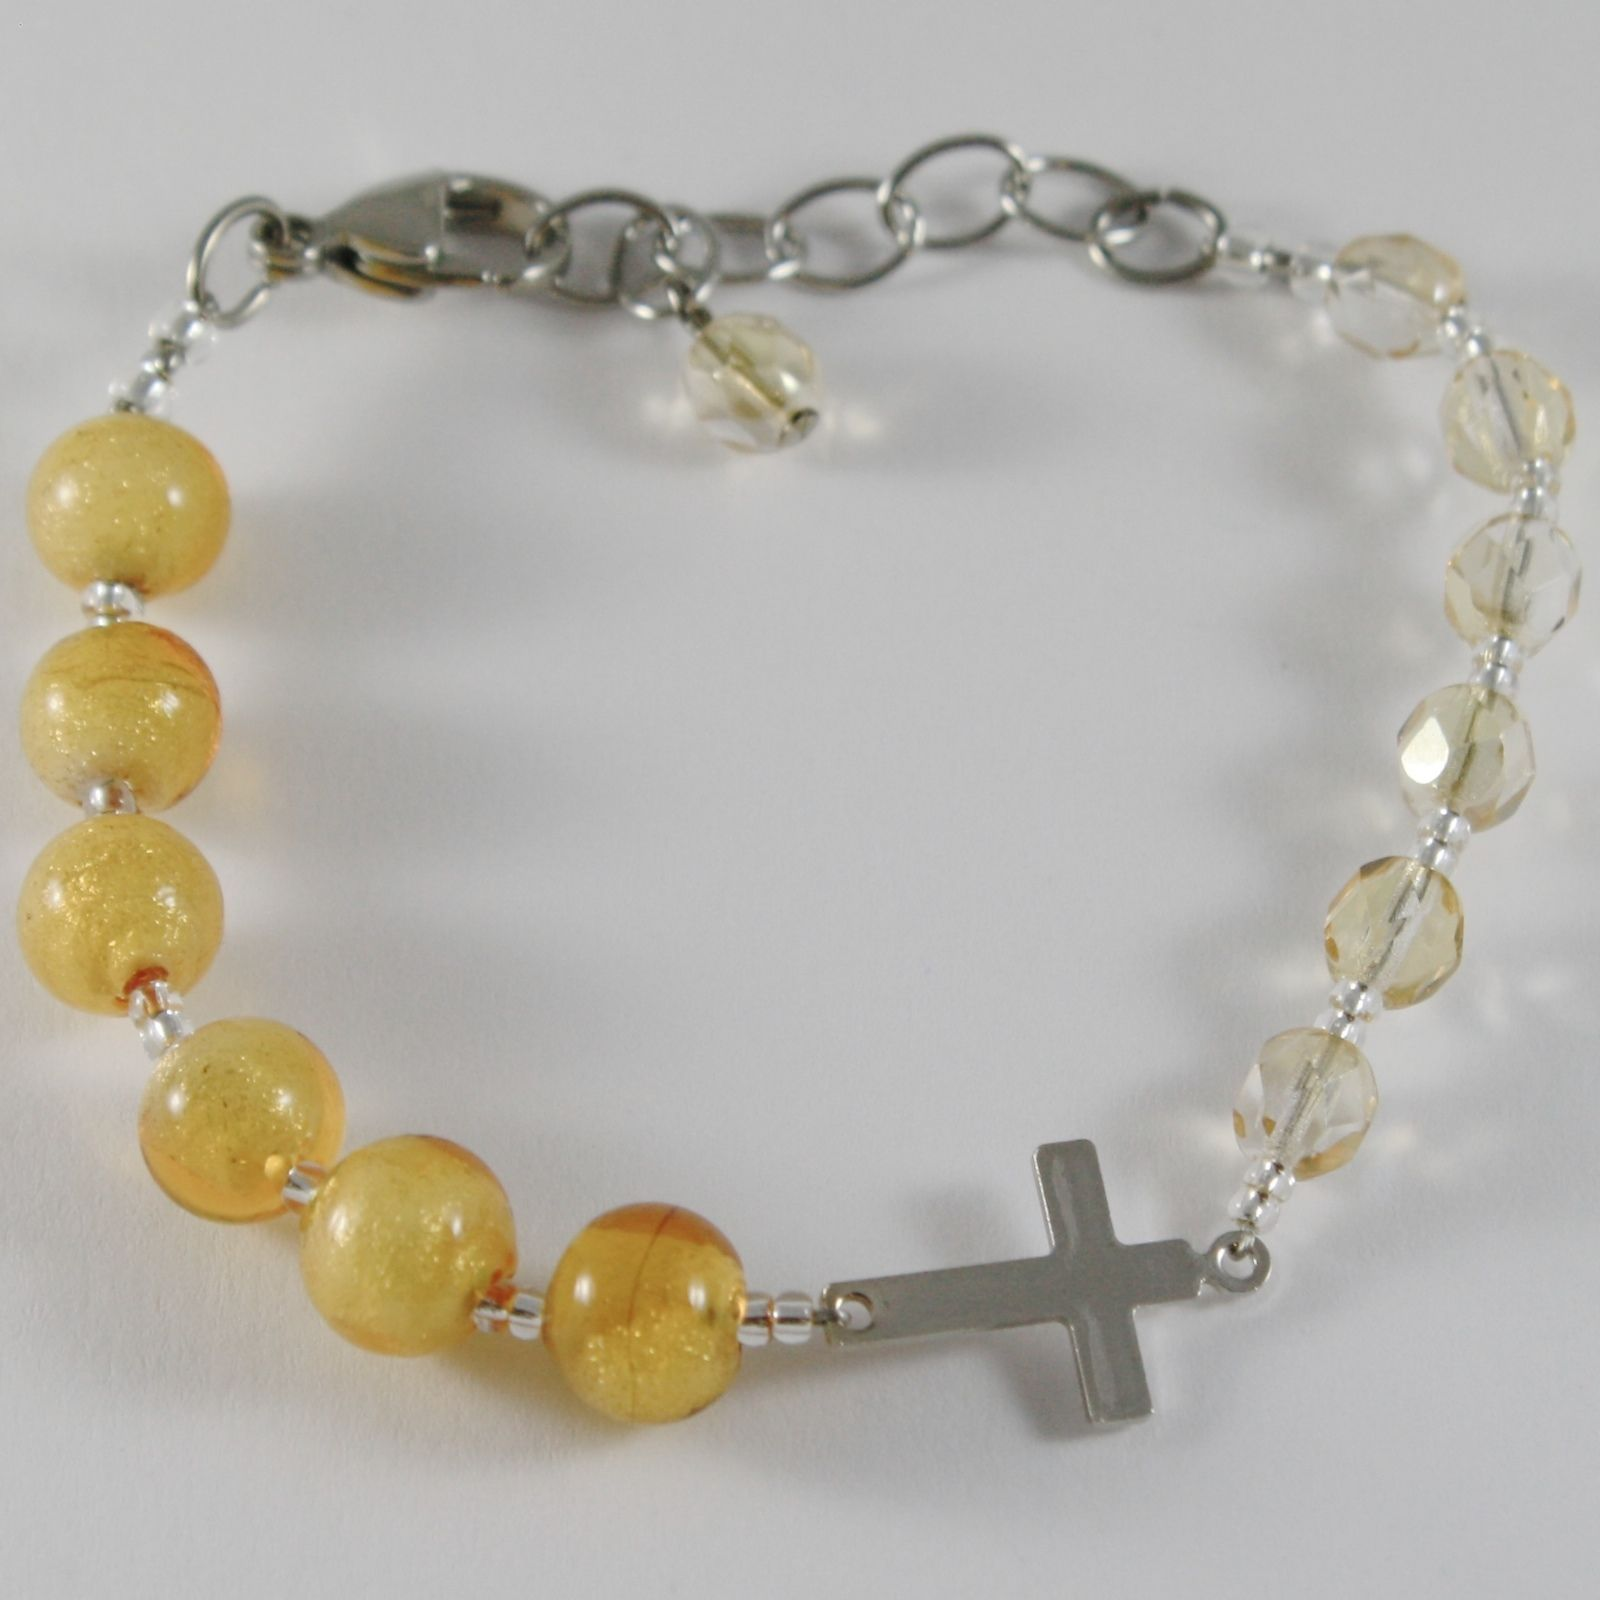 BRACELET ANTICA MURRINA VENEZIA WITH MURANO GLASS YELLOW WITH CROSS